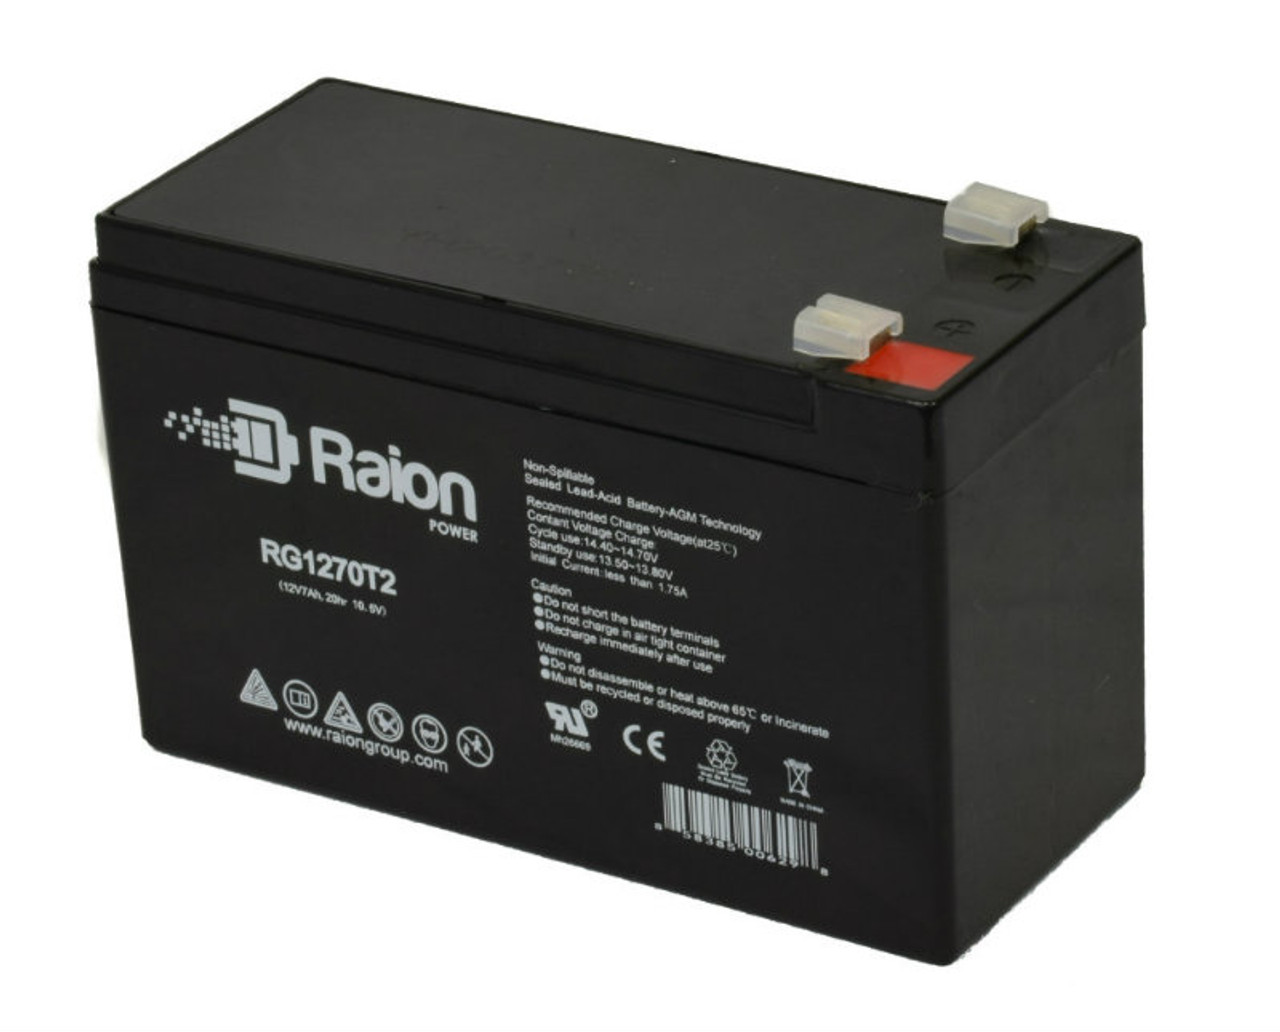 Raion Power RG1270T1 Replacement Battery for Leoch Battery LP12-7L